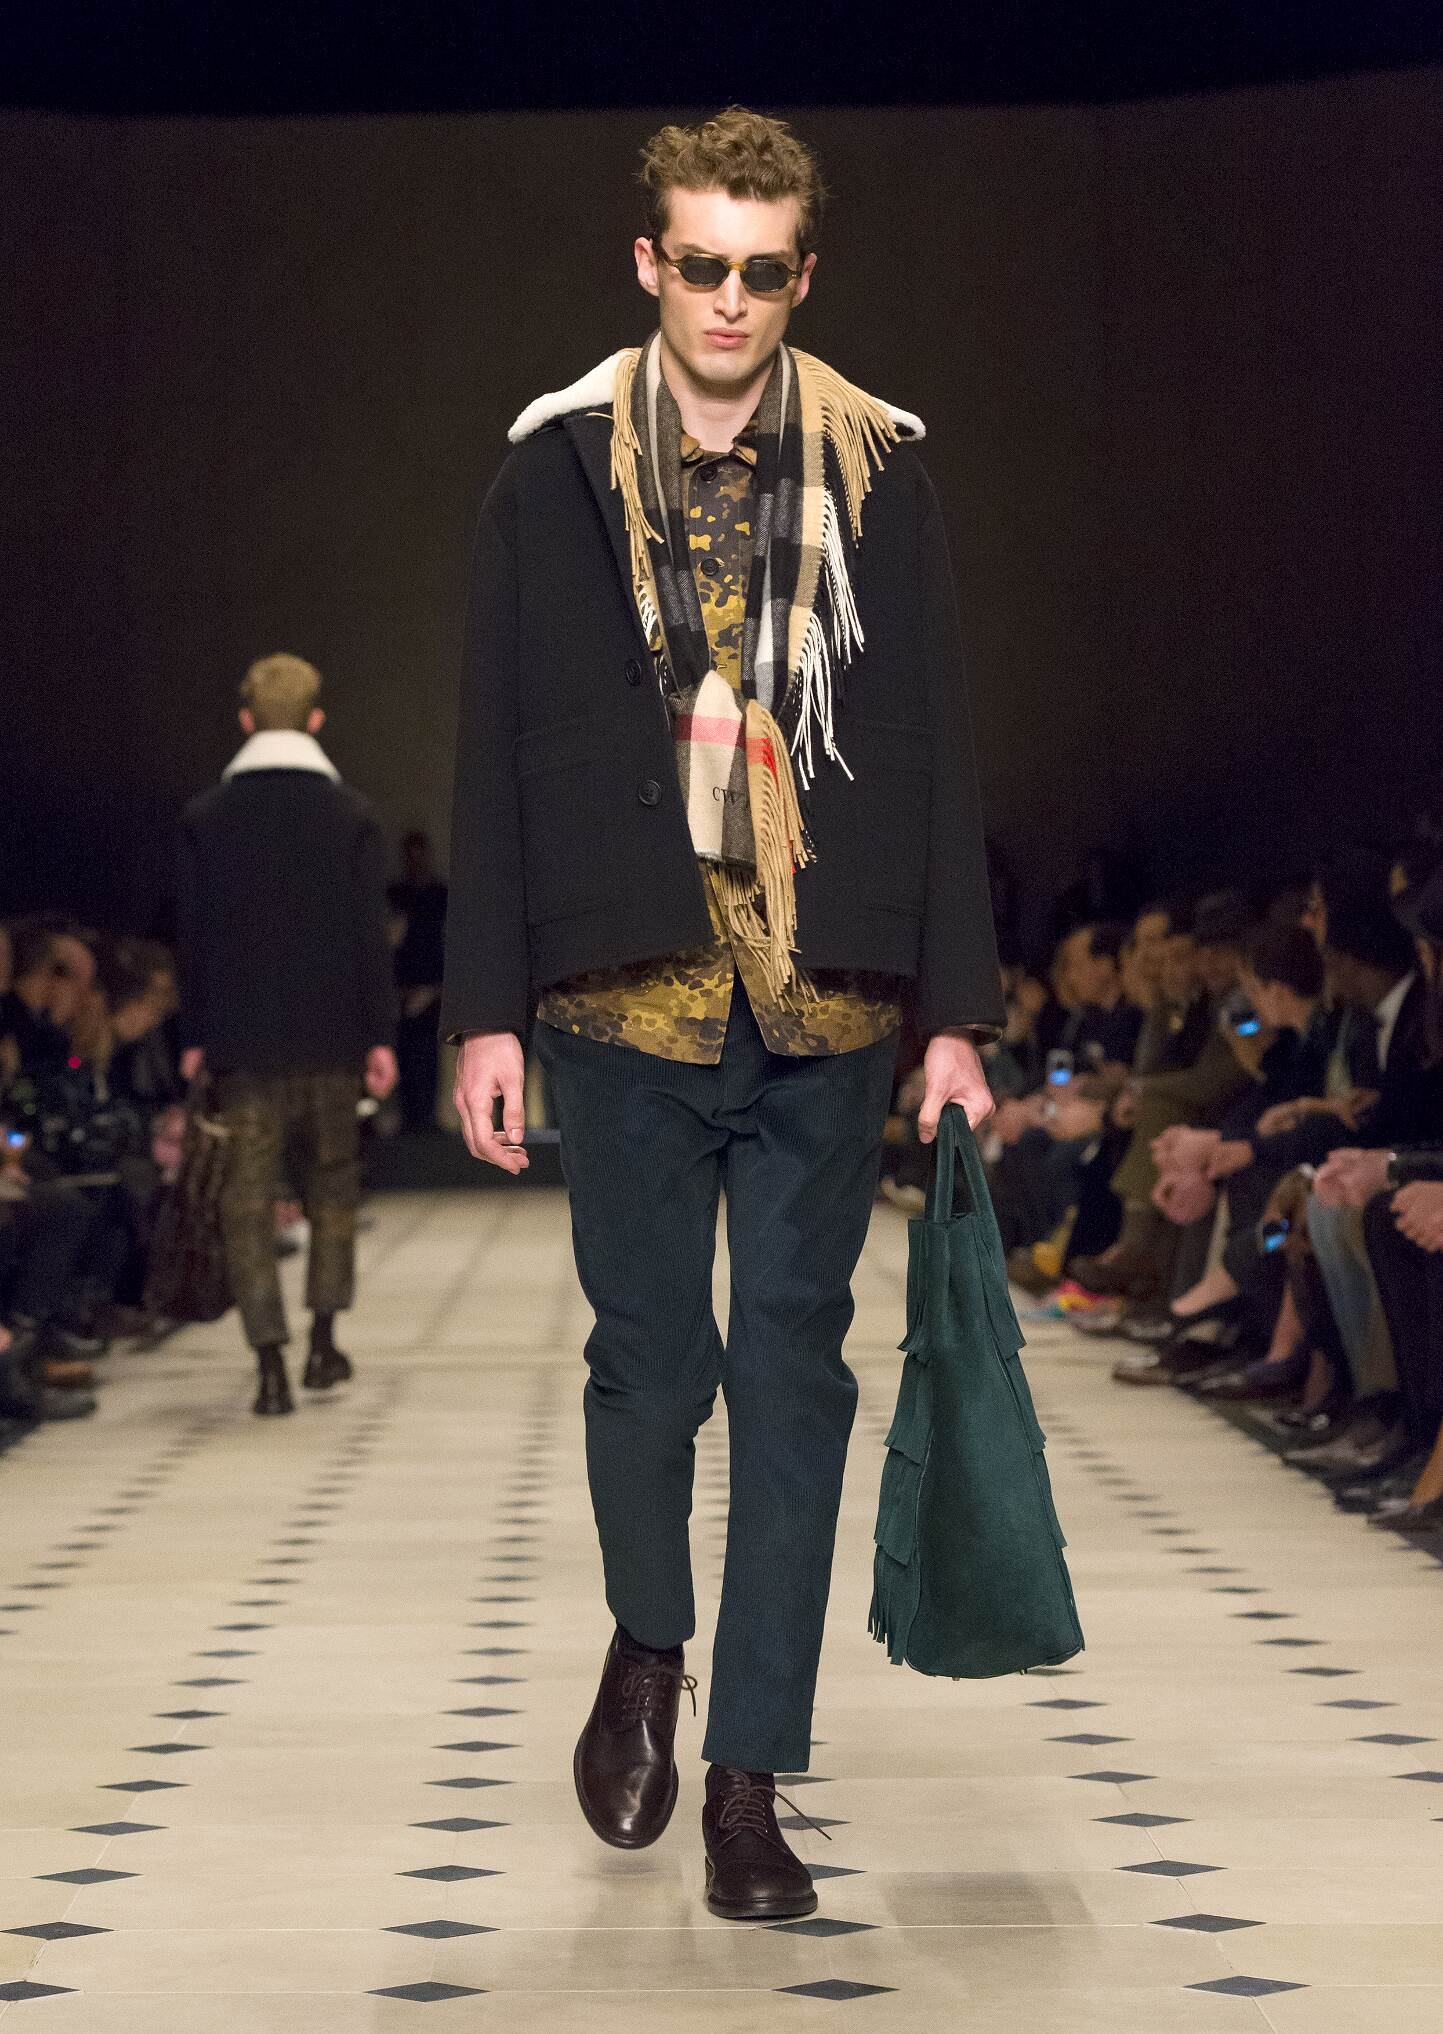 Catwalk Burberry Prorsum Man Fashion Show Winter 2015